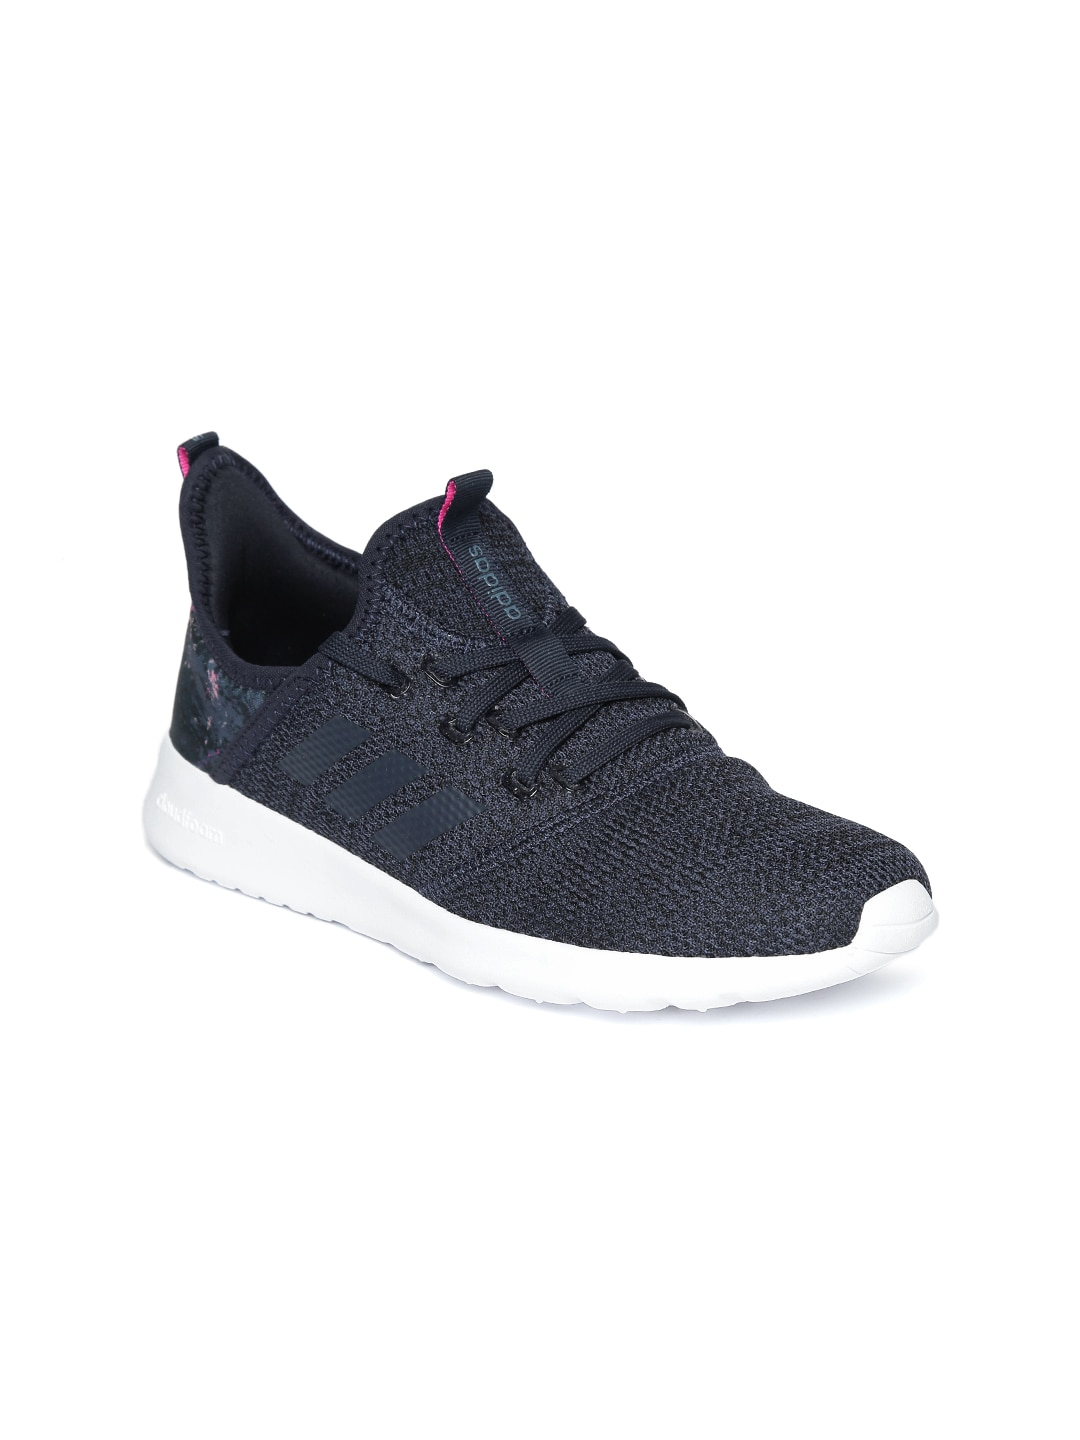 60195758ed832 Adidas Arianna Cloudfoam Navy Blue Training Shoes for women - Get ...